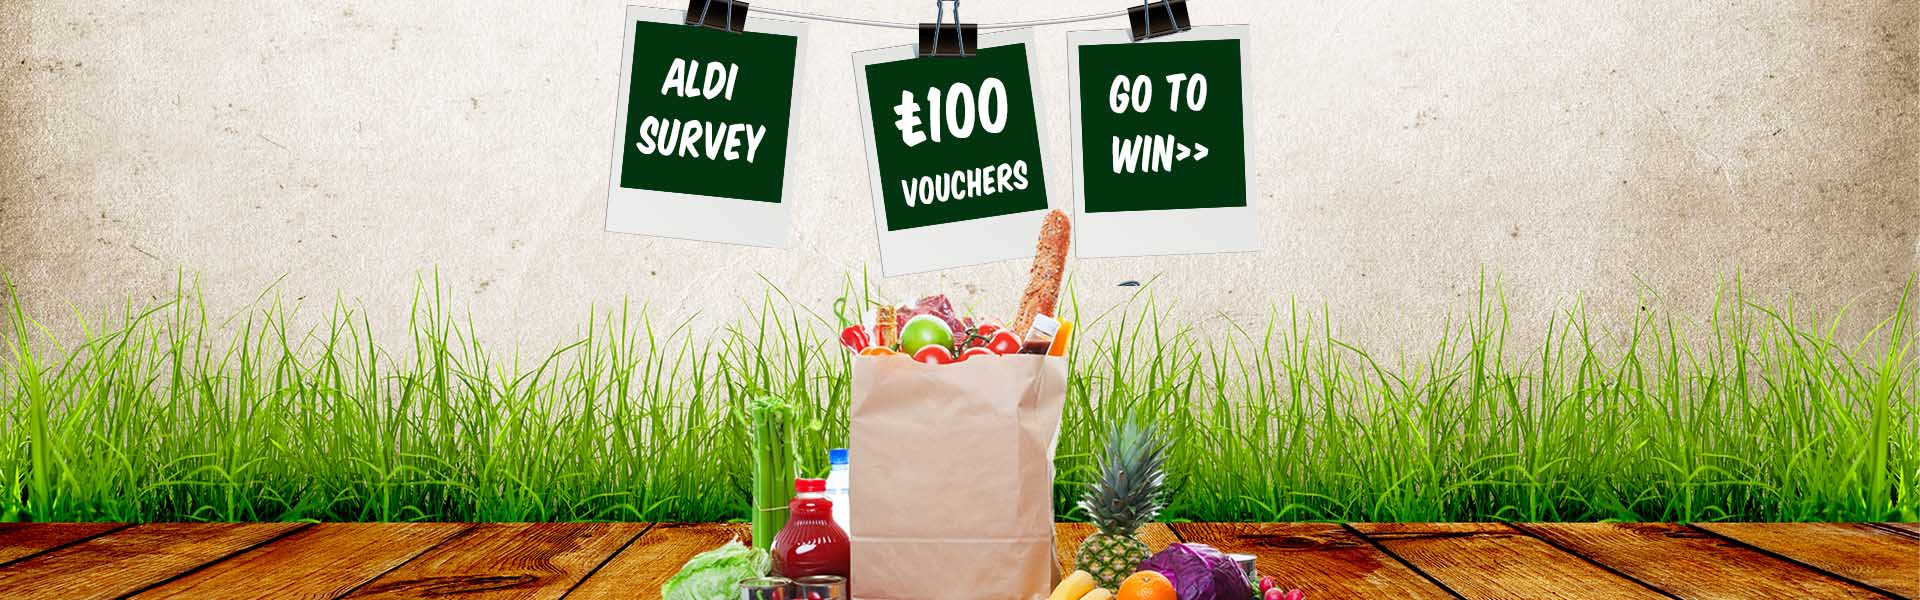 www.tellaldi.com - Tell Aldi Survey £100 in Aldi Vouchers